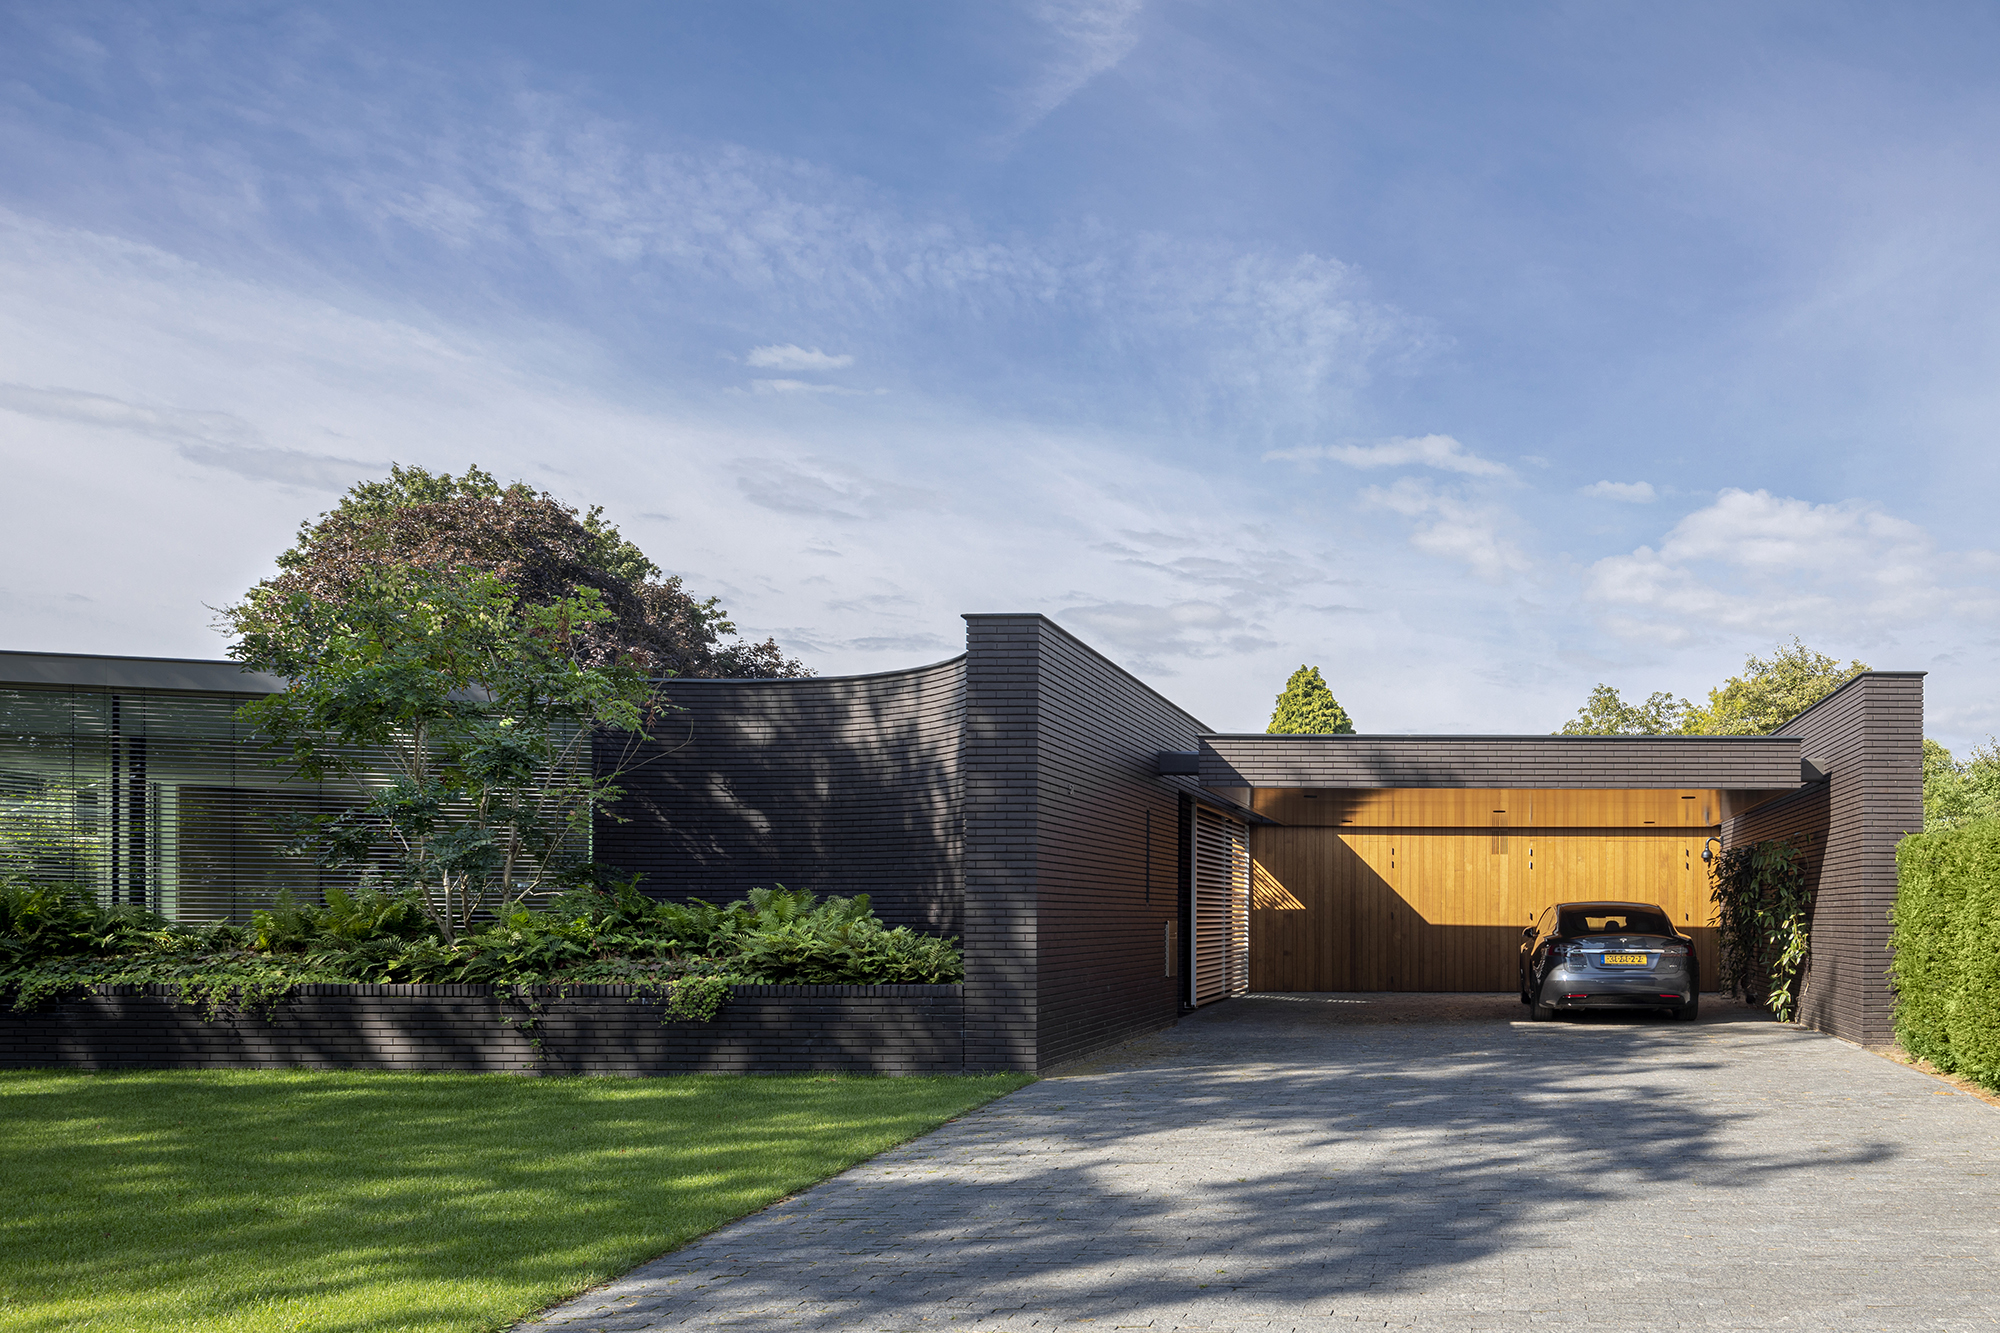 Gallery of Outside In House / i29 + Bedaux de Brouwer Architects - 1